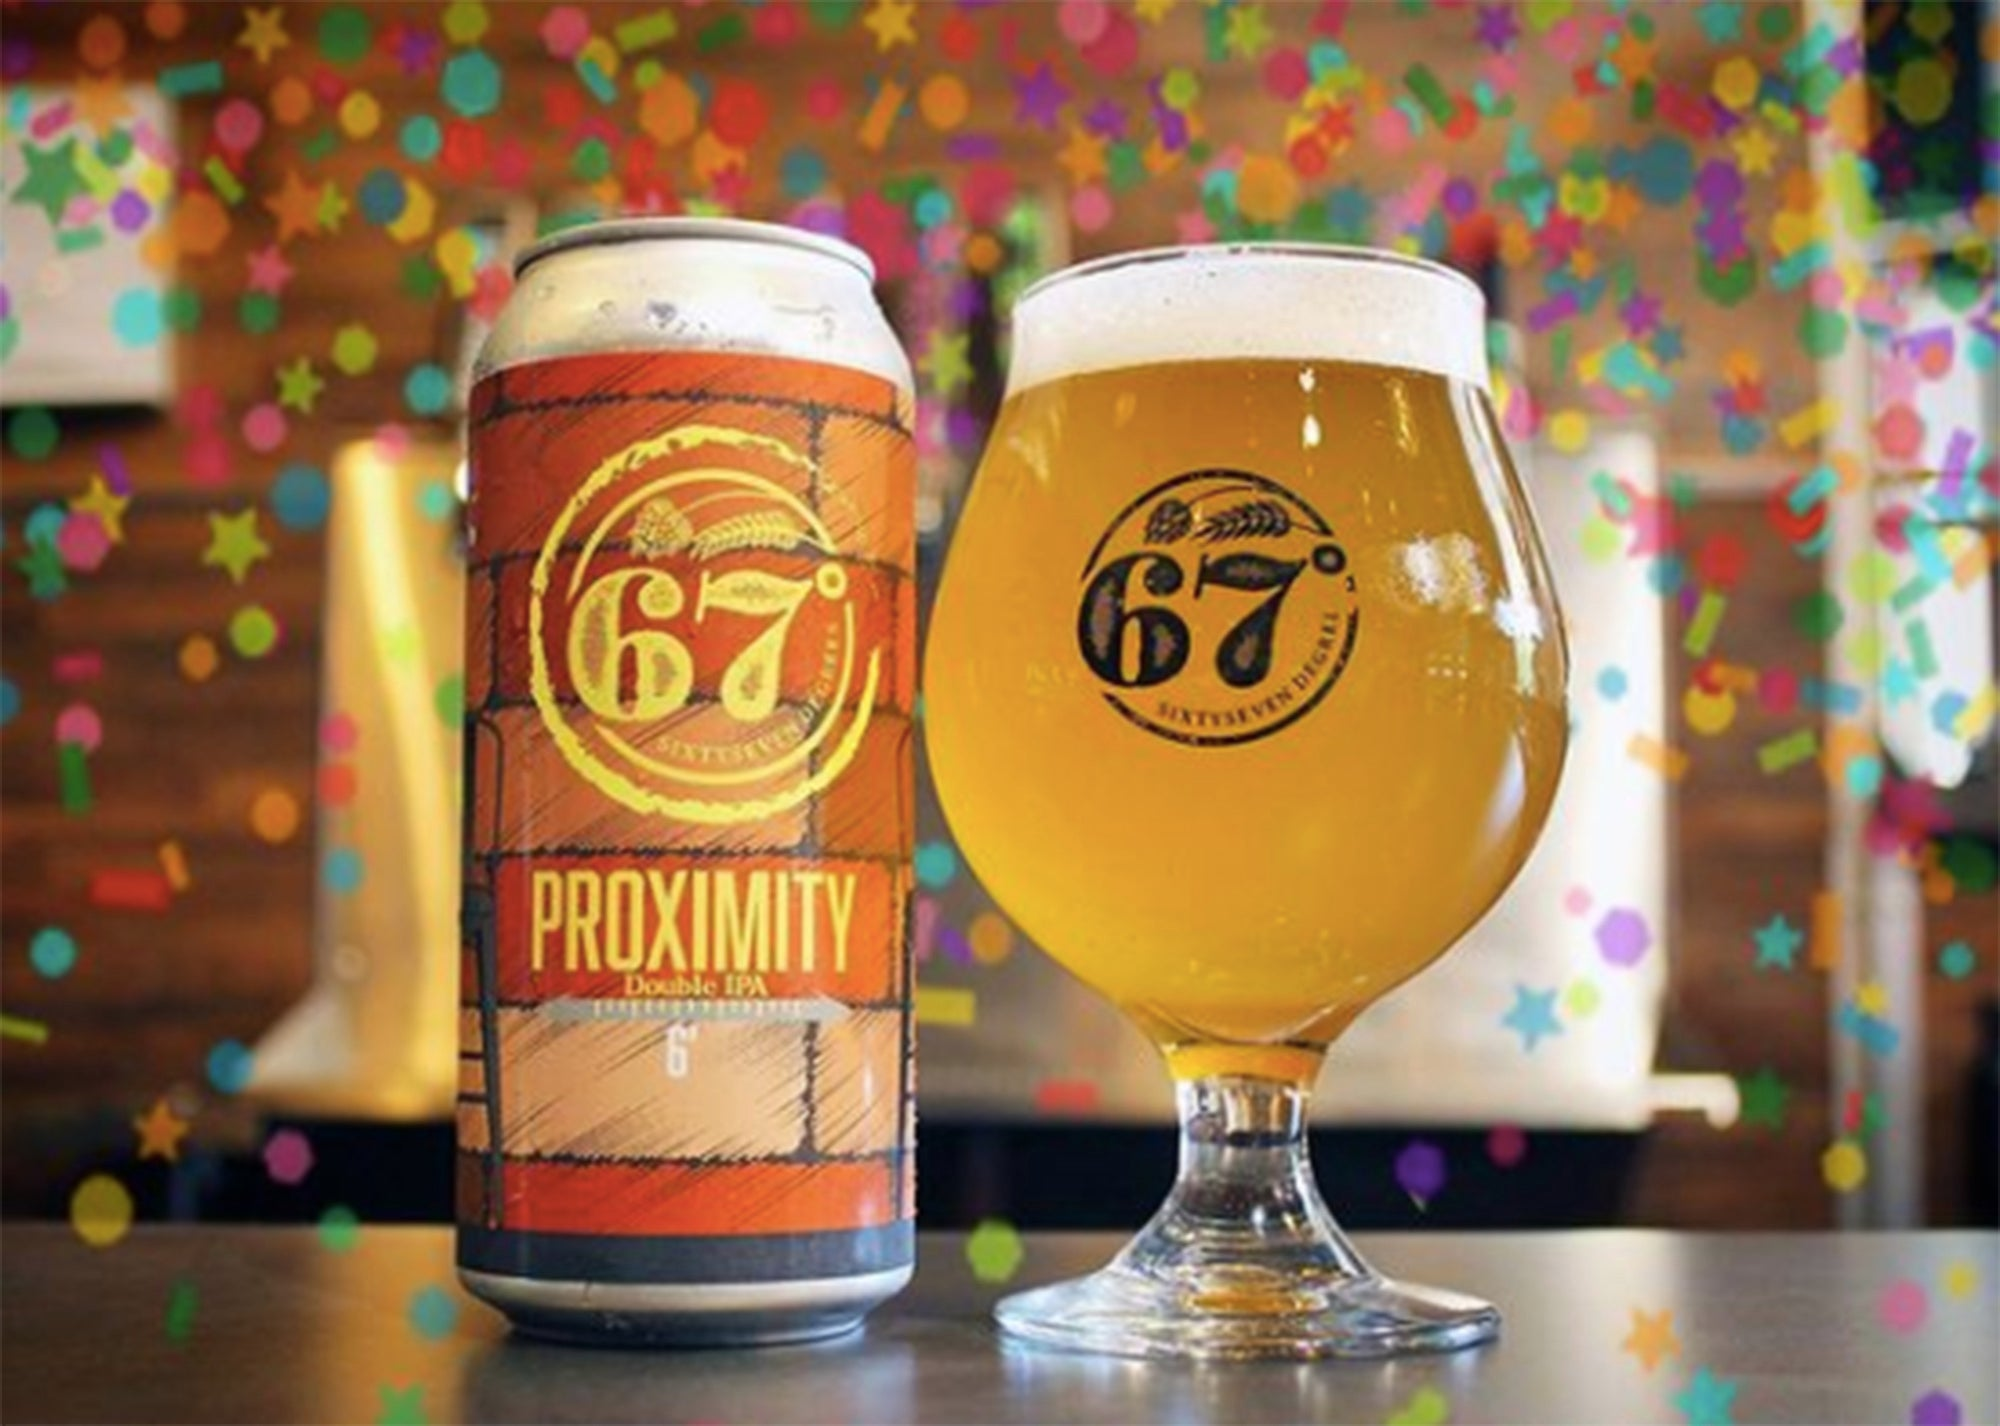 Proximity DIPA from 67 Degrees Brewing